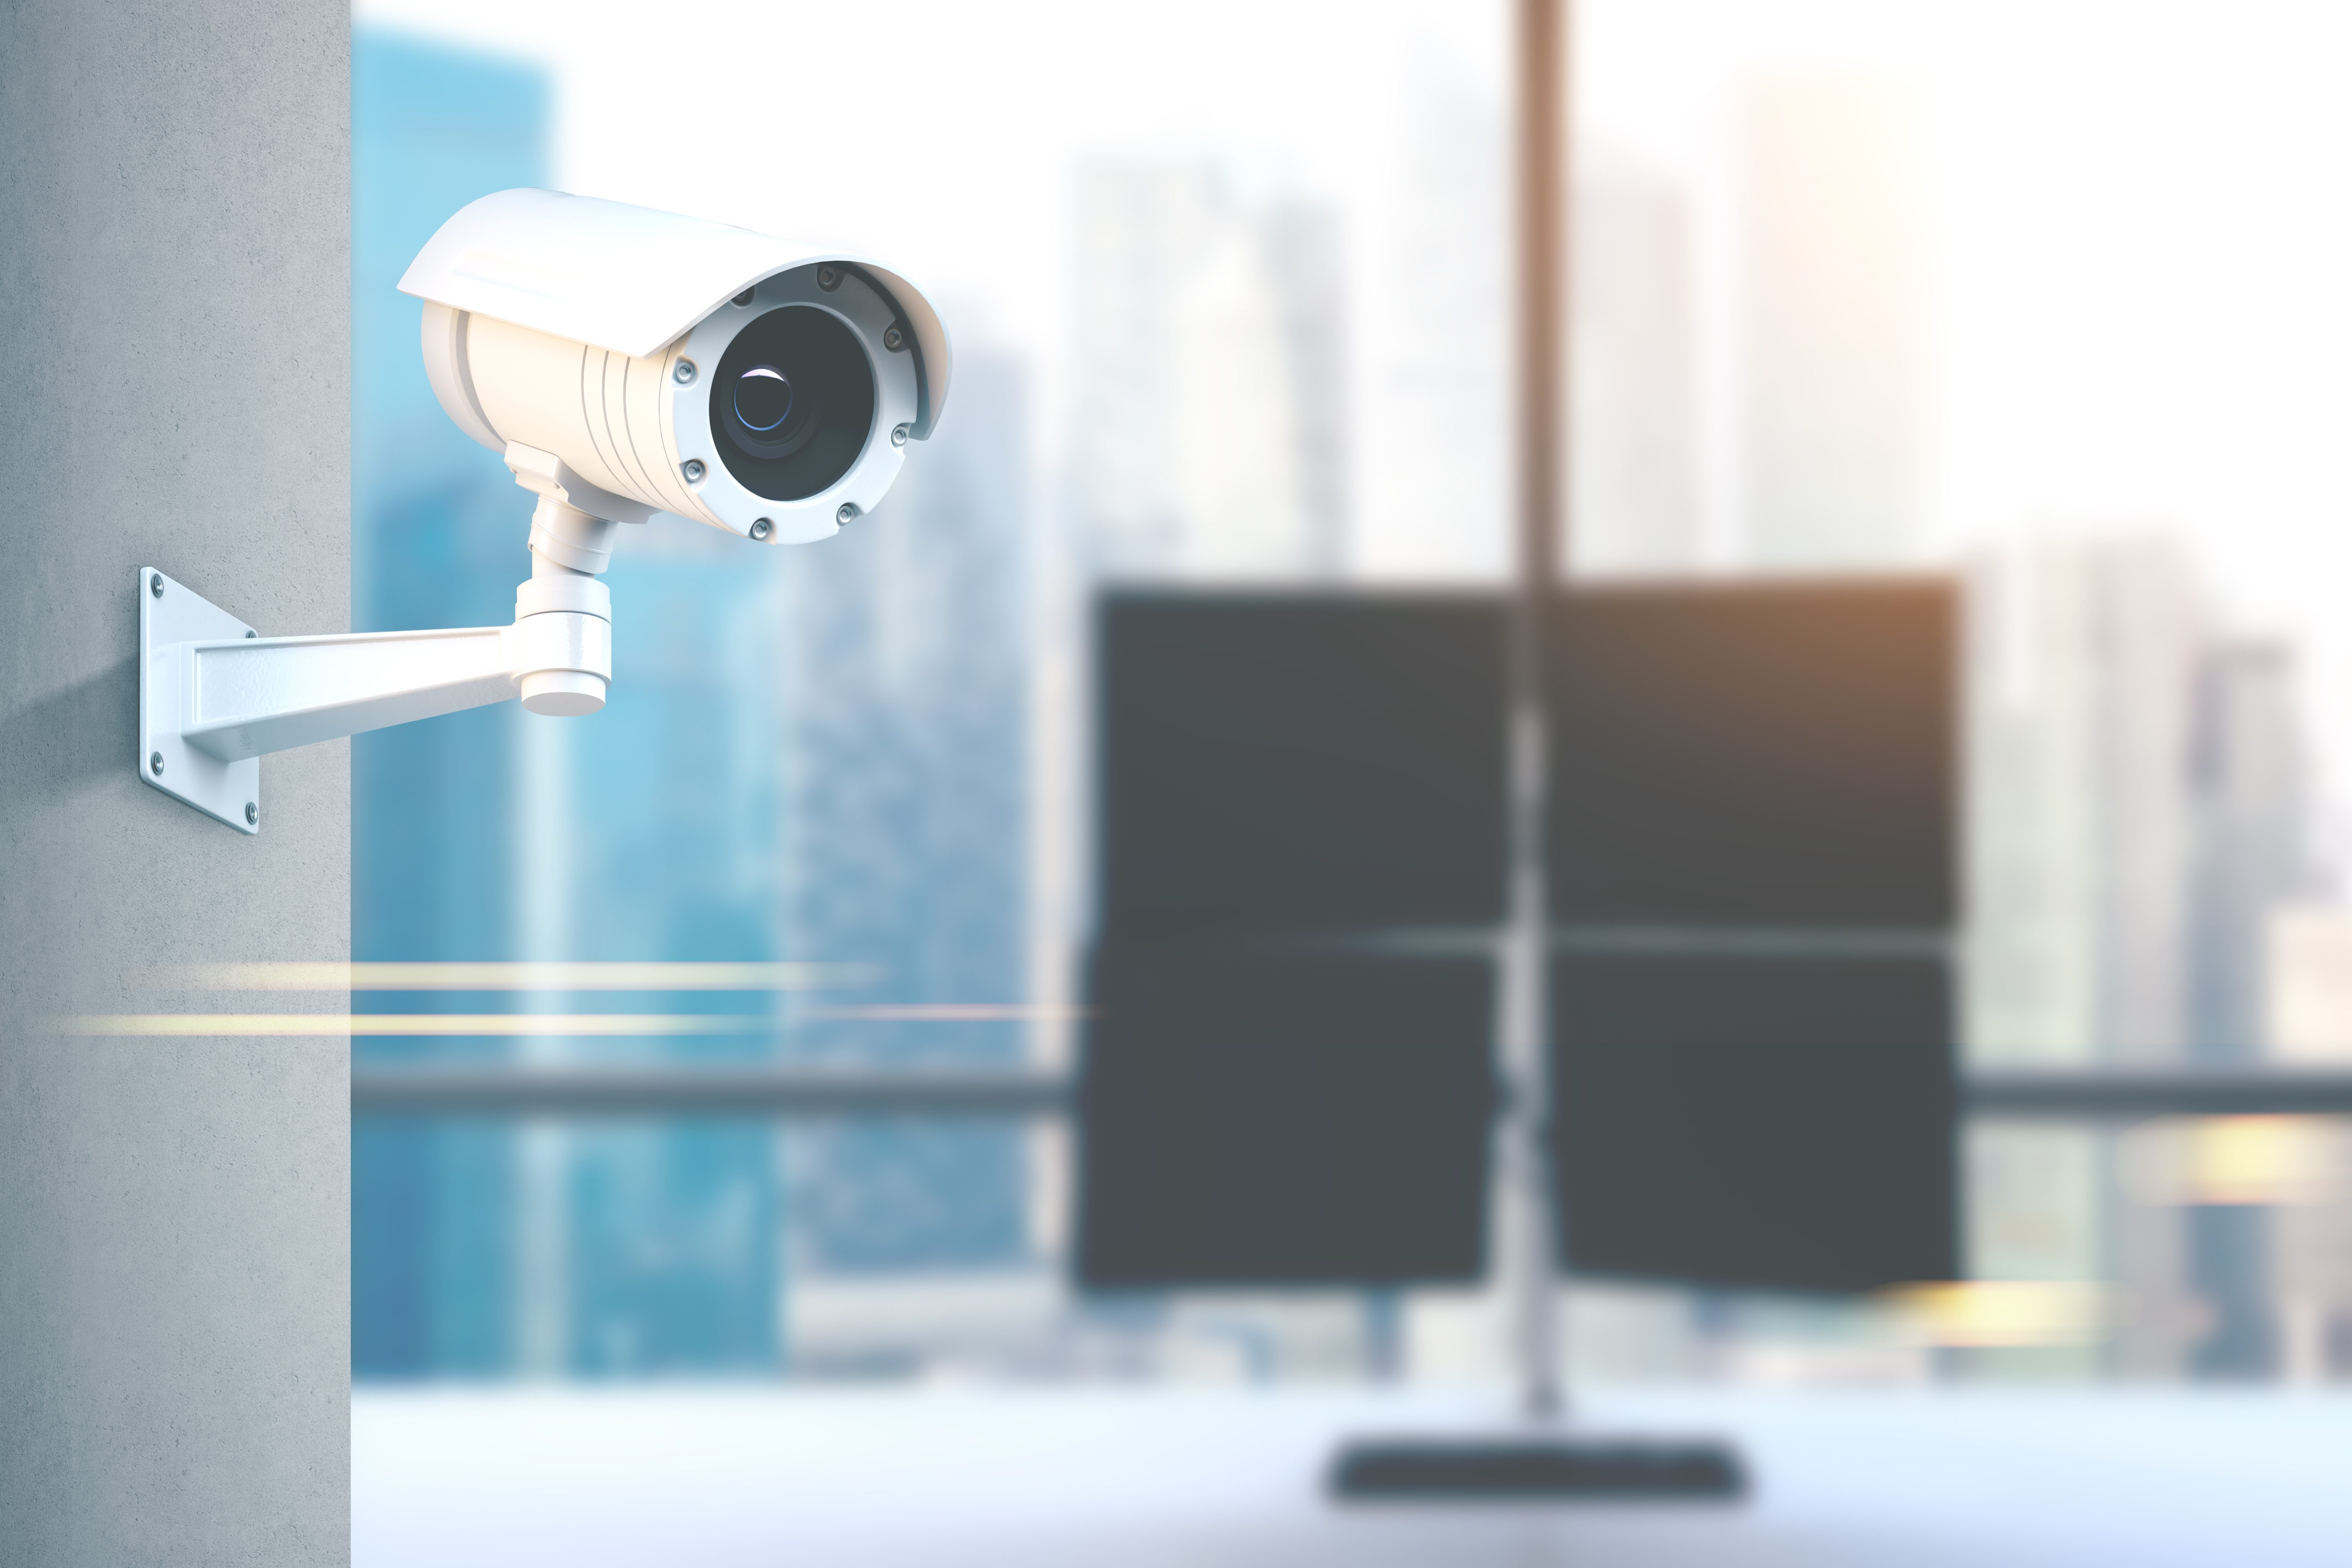 How Cost-Effective are Physical Security Solutions in the Workplace?